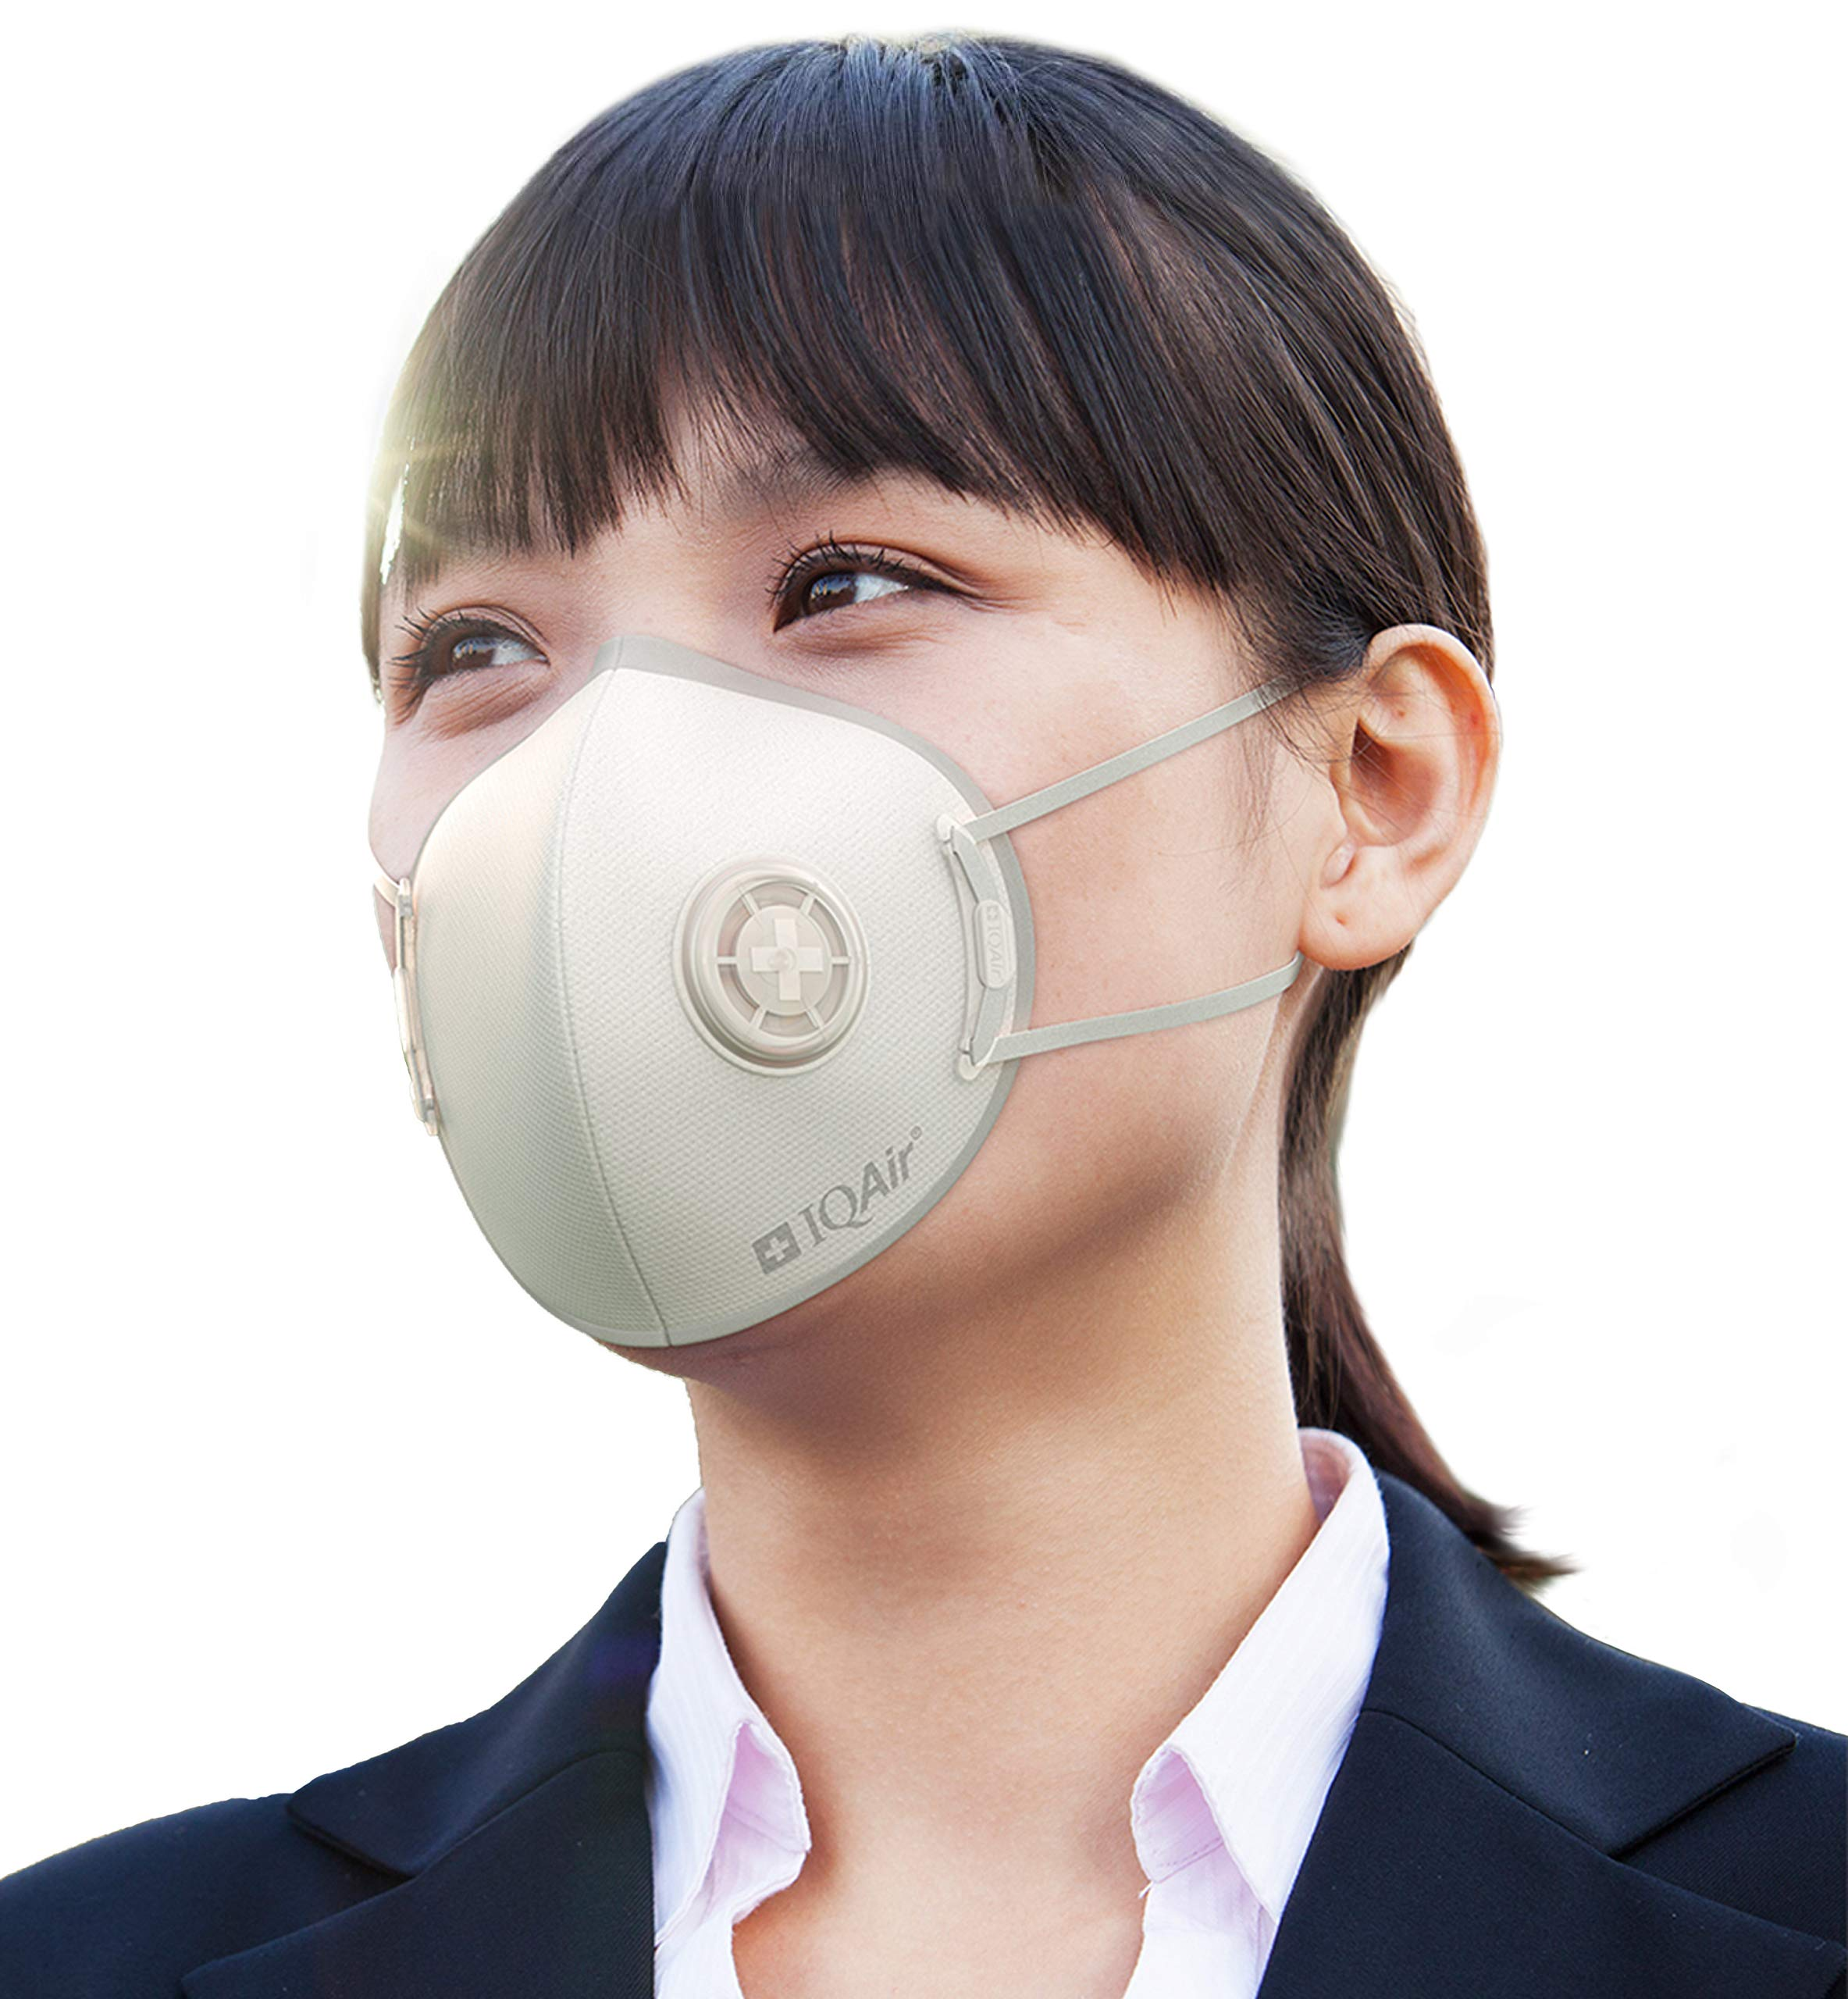 IQAir [Mask] Respirator for Adult with Medical-Grade HyperHEPA Material, KN95 certified, Anti Pollution PM2.5, Includes Breathing Valve - 10 Pack, Large by IQAir